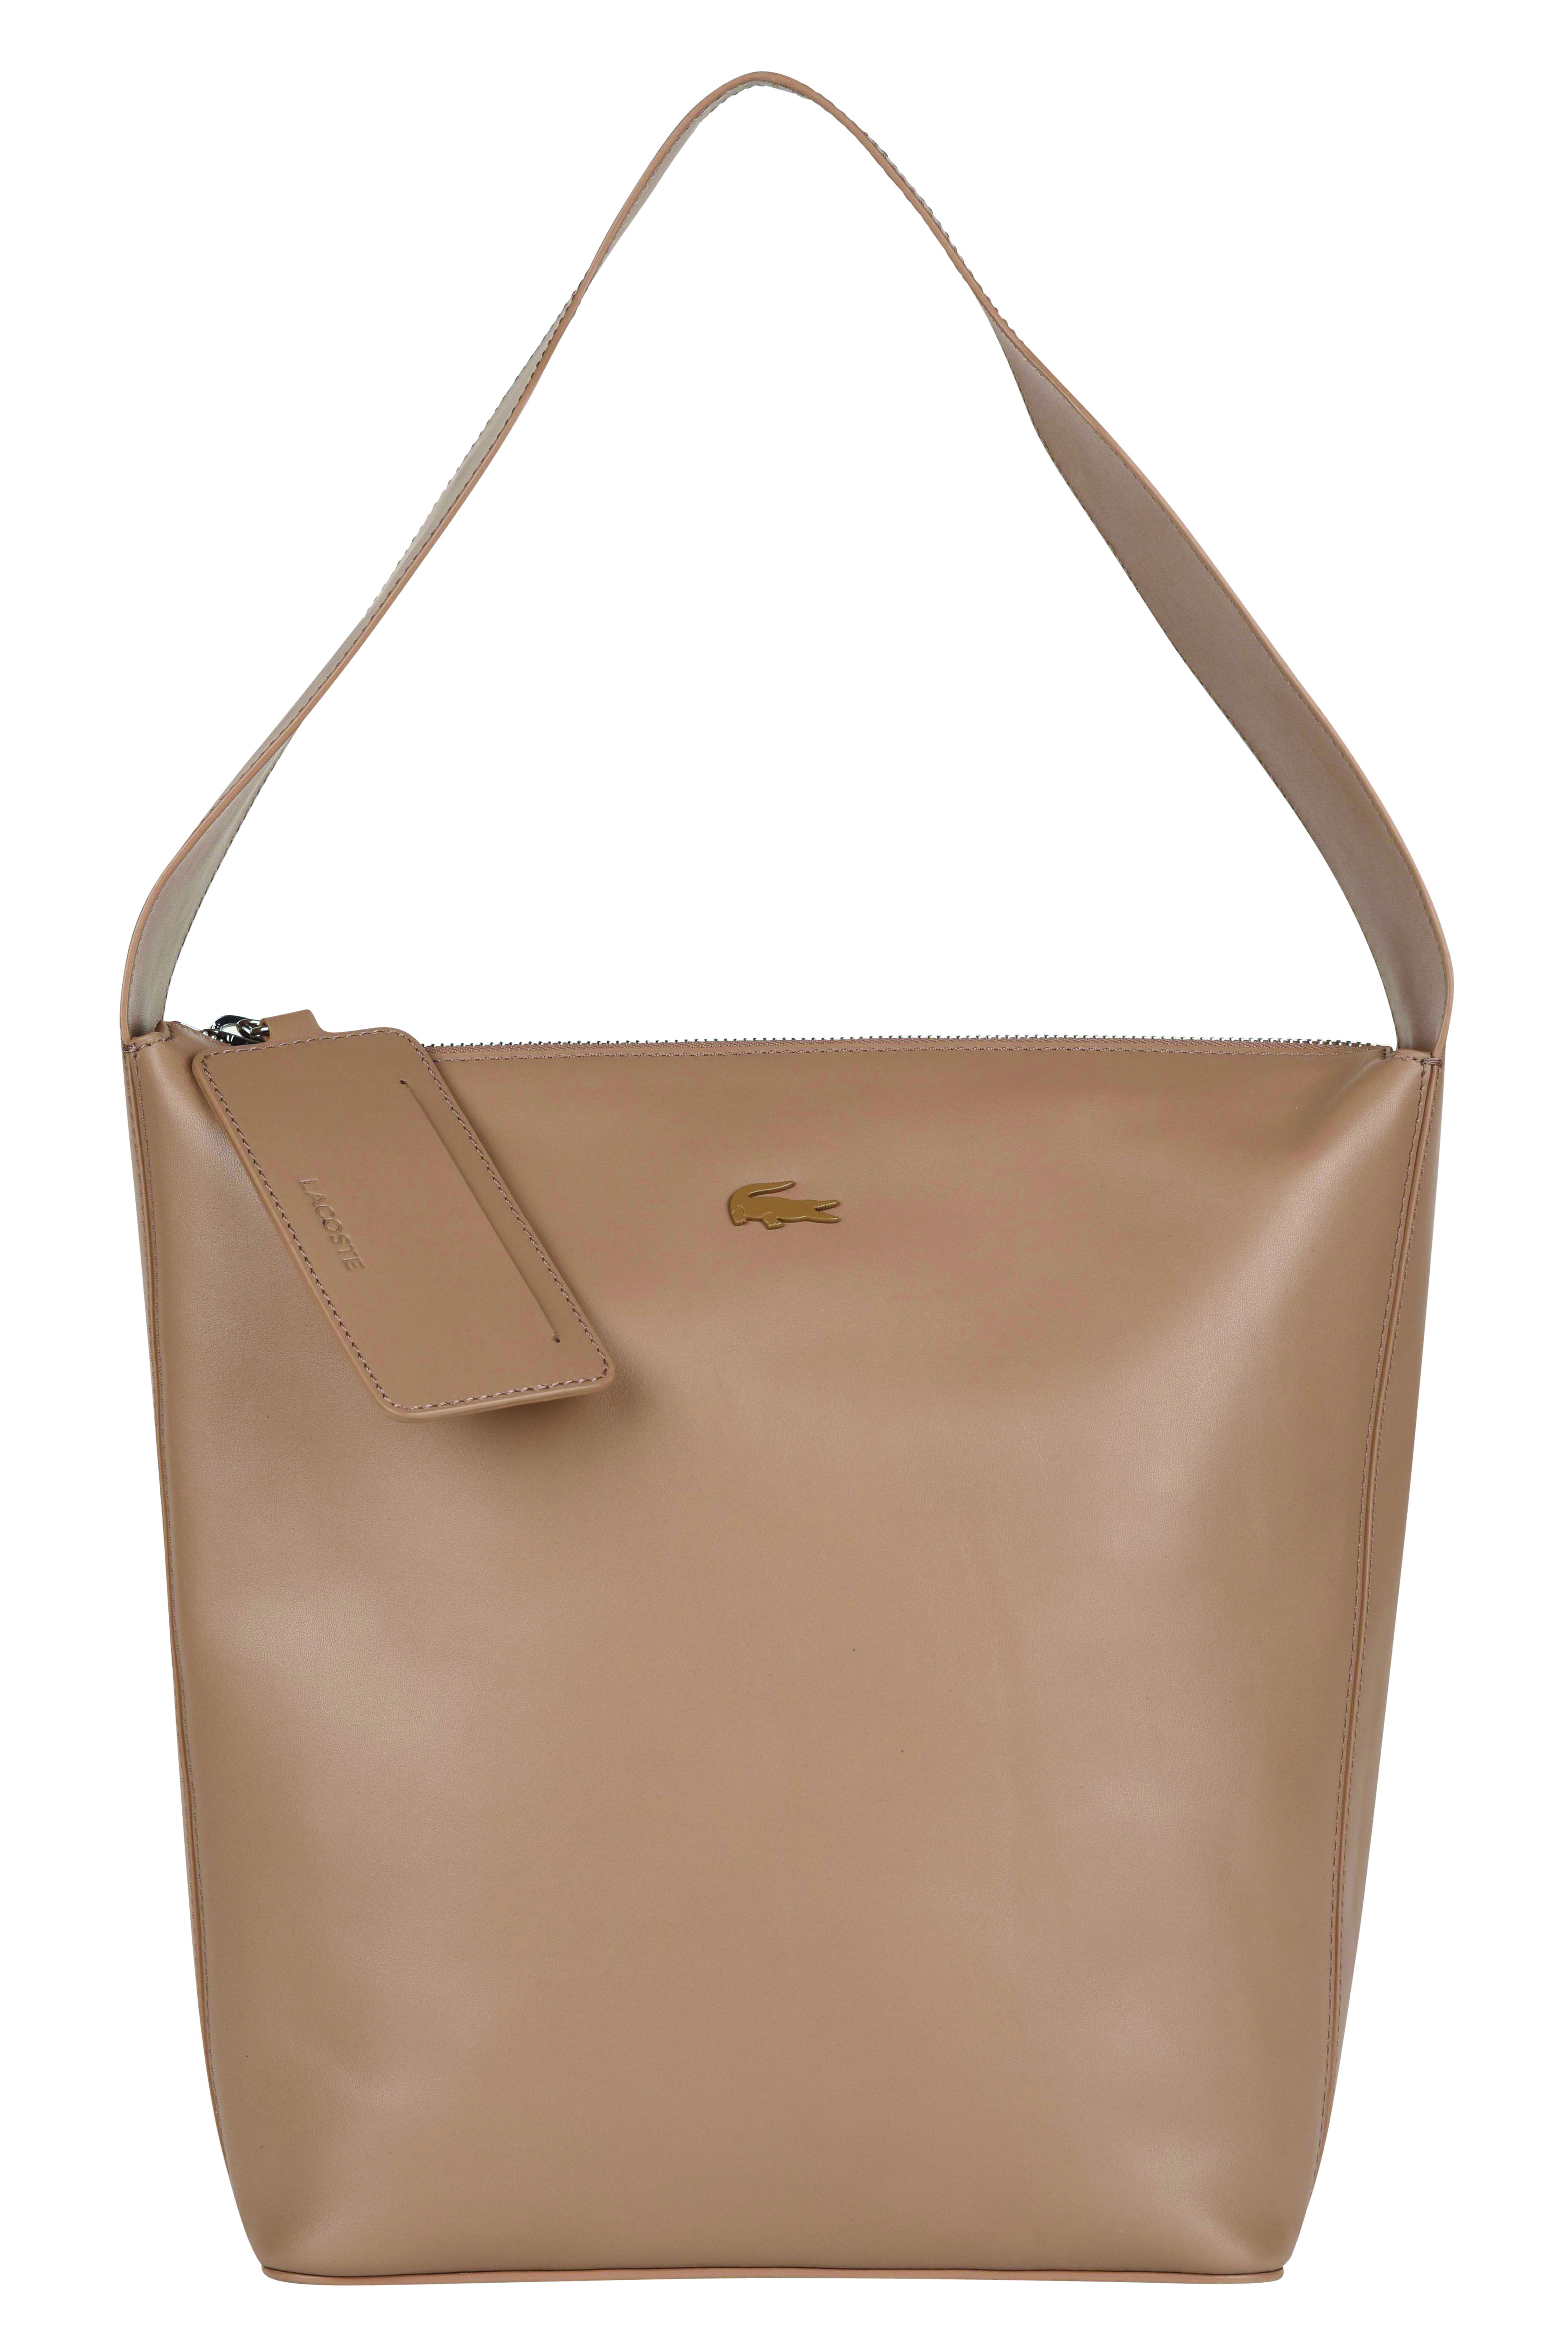 """""""PURITY"""": LACOSTE'S NEW LINE OF LEATHER GOODS FOR WOMEN"""